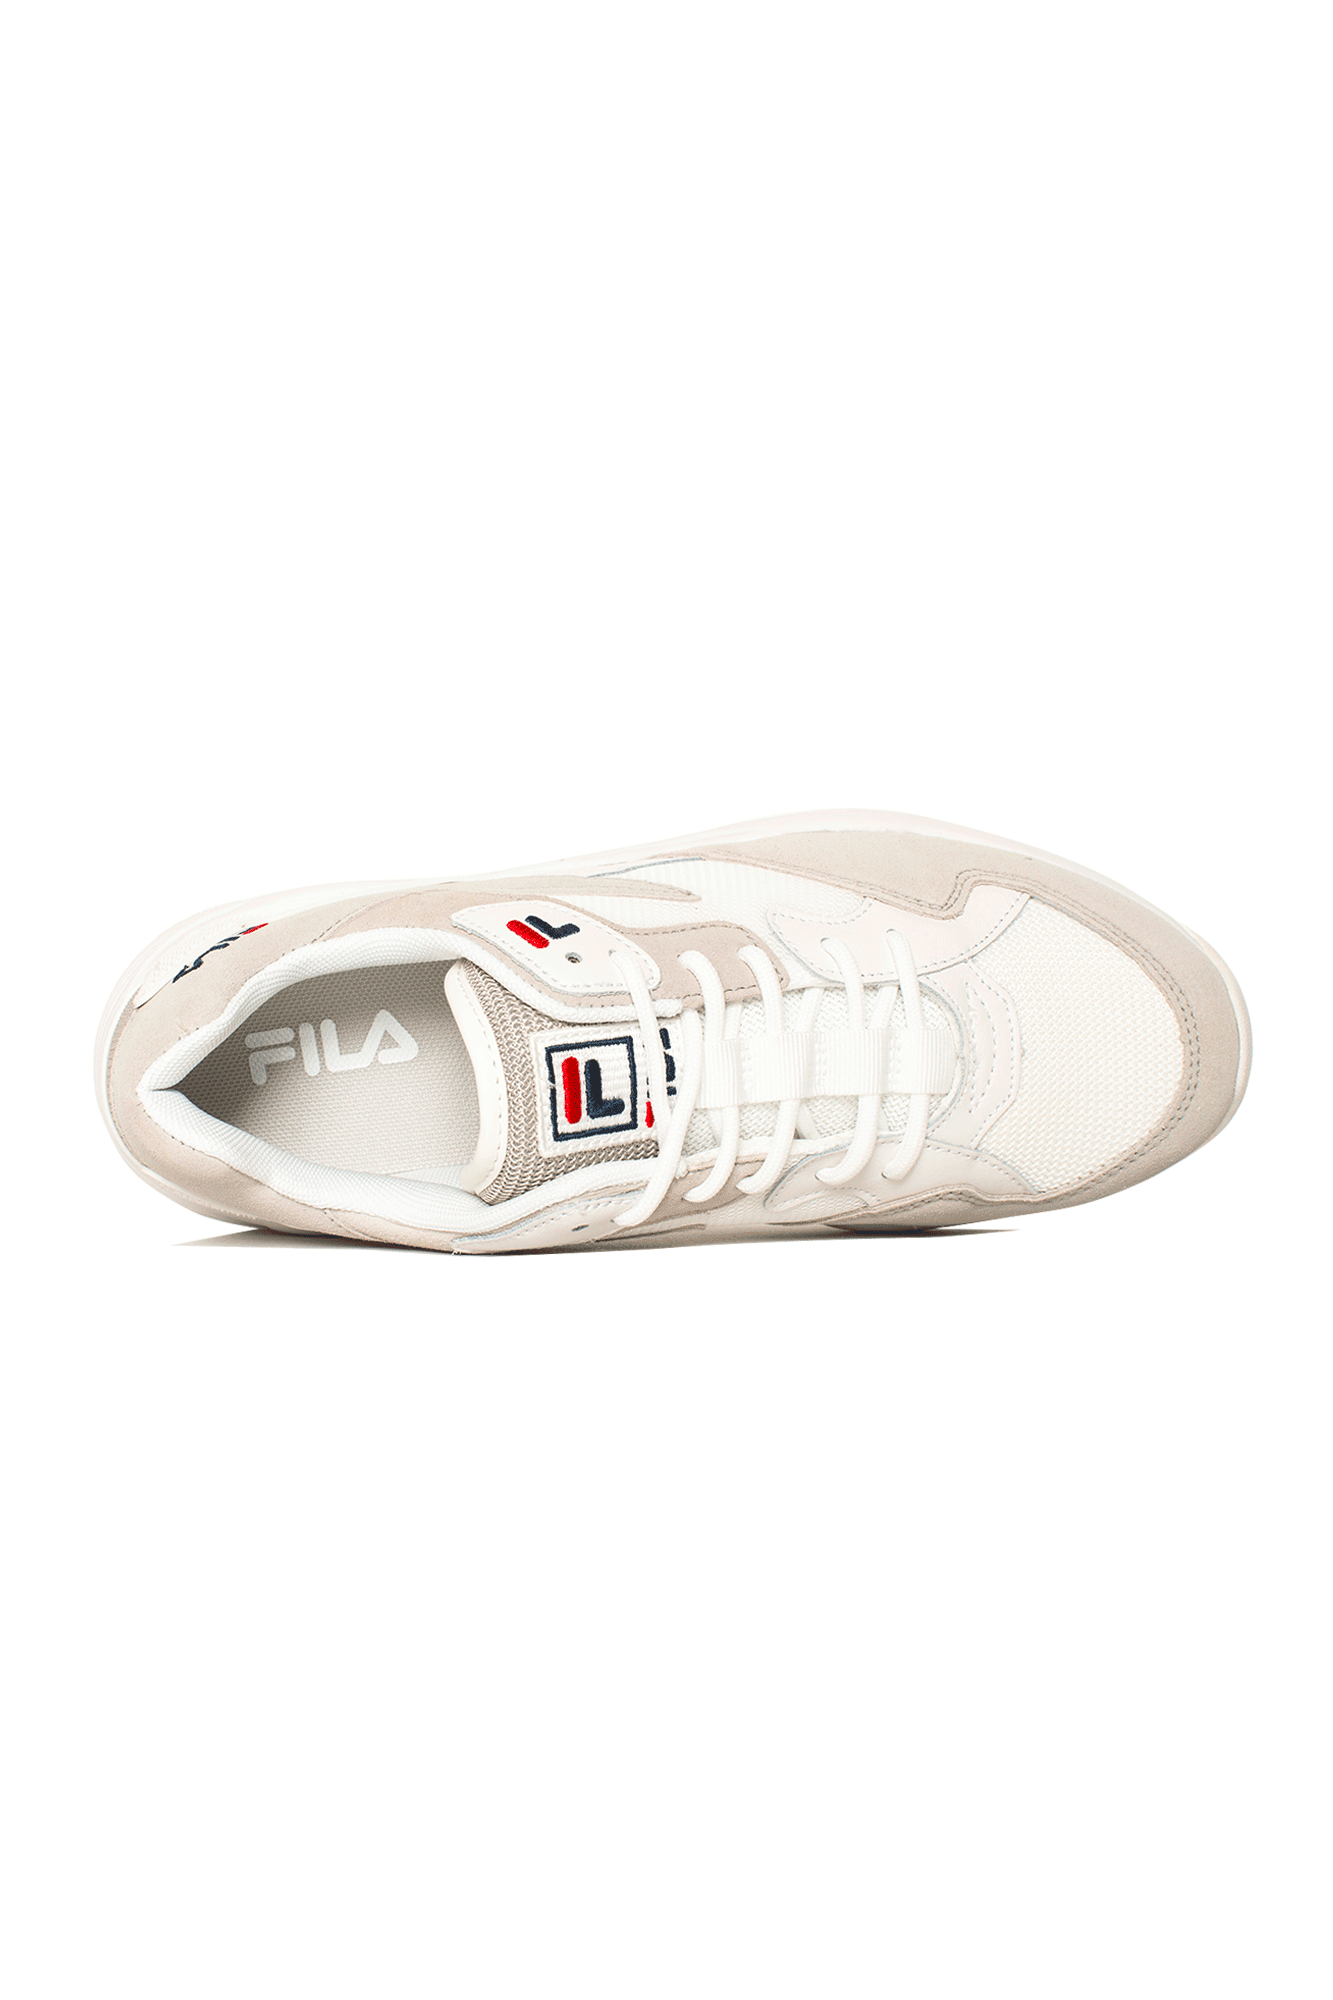 Fila Sneakers Vault CMR Jogger L Low White 1010587#000#1FG#7,5 - One Block Down